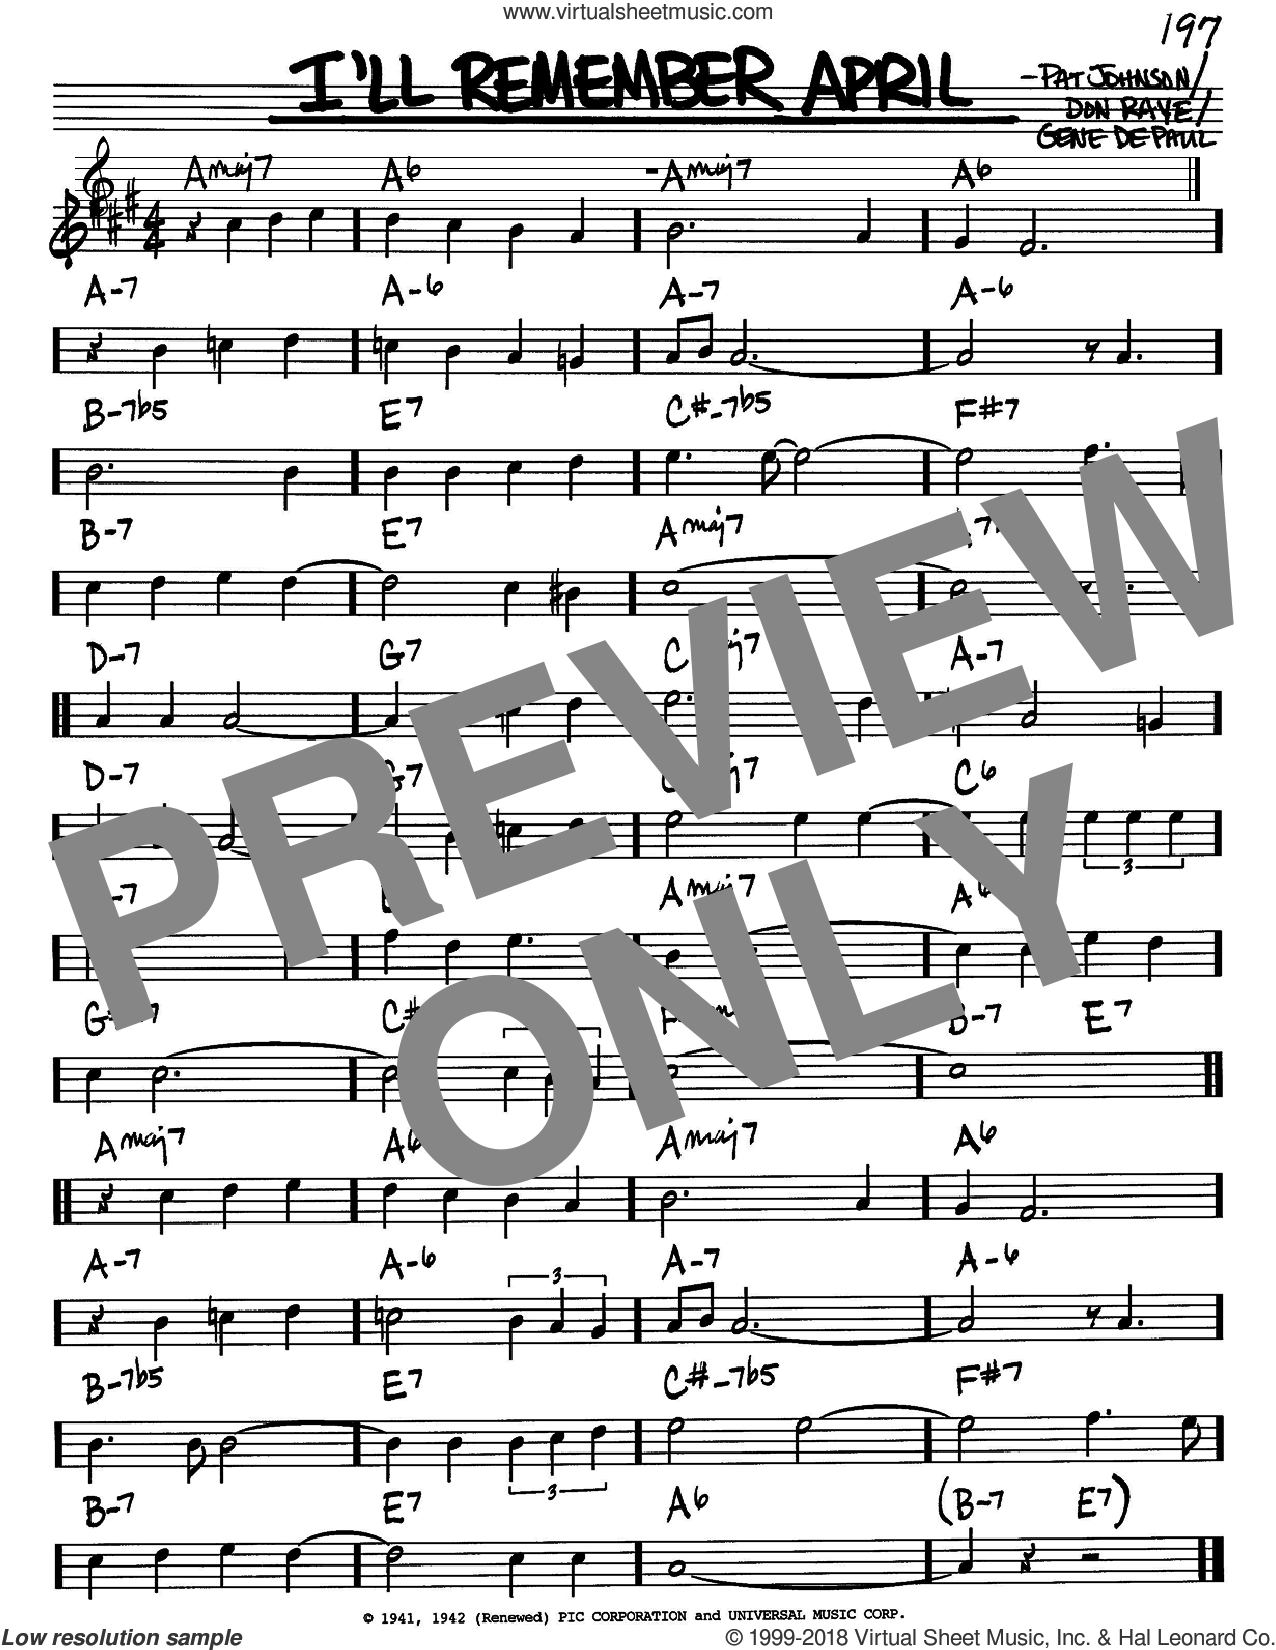 I'll Remember April sheet music for voice and other instruments (Bb) by Pat Johnson